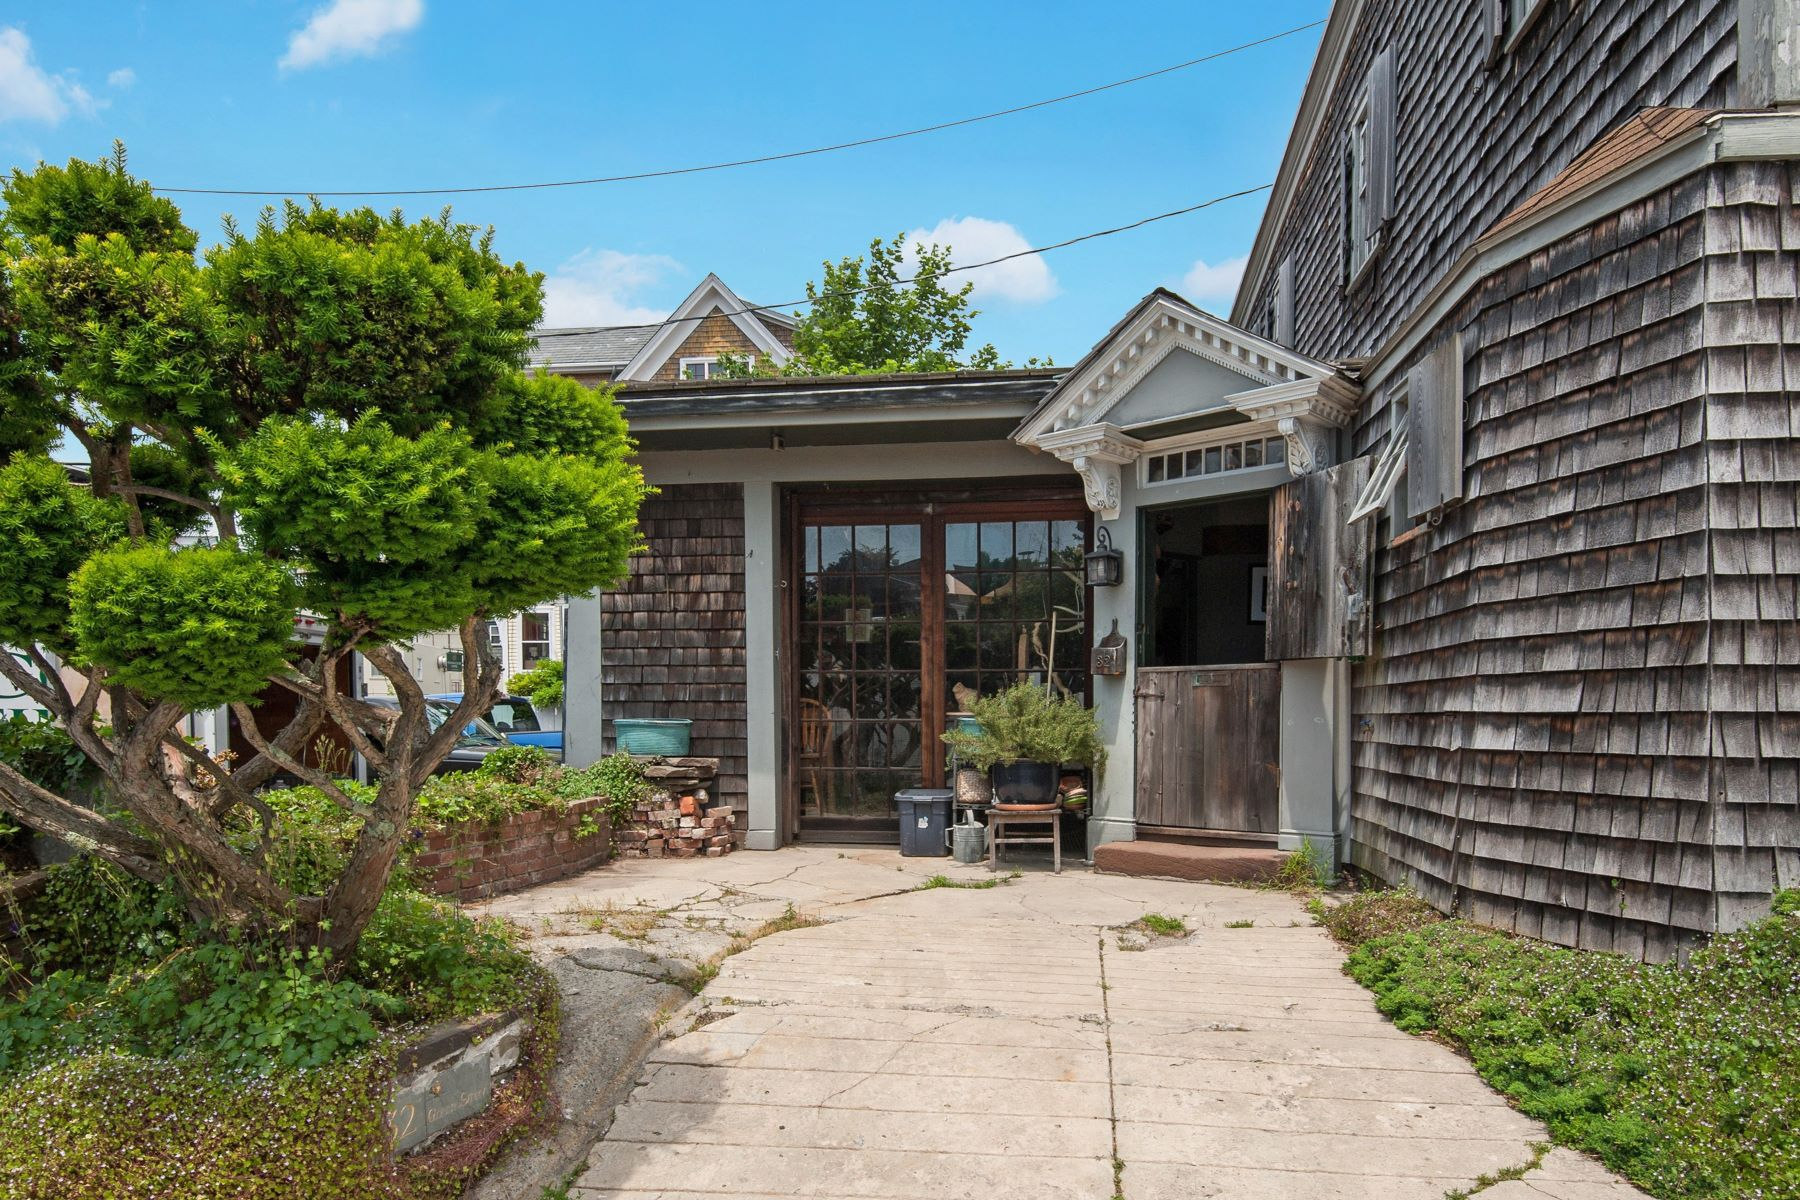 Additional photo for property listing at 'Conservatory' 32 Green Street Newport, Rhode Island 02840 United States